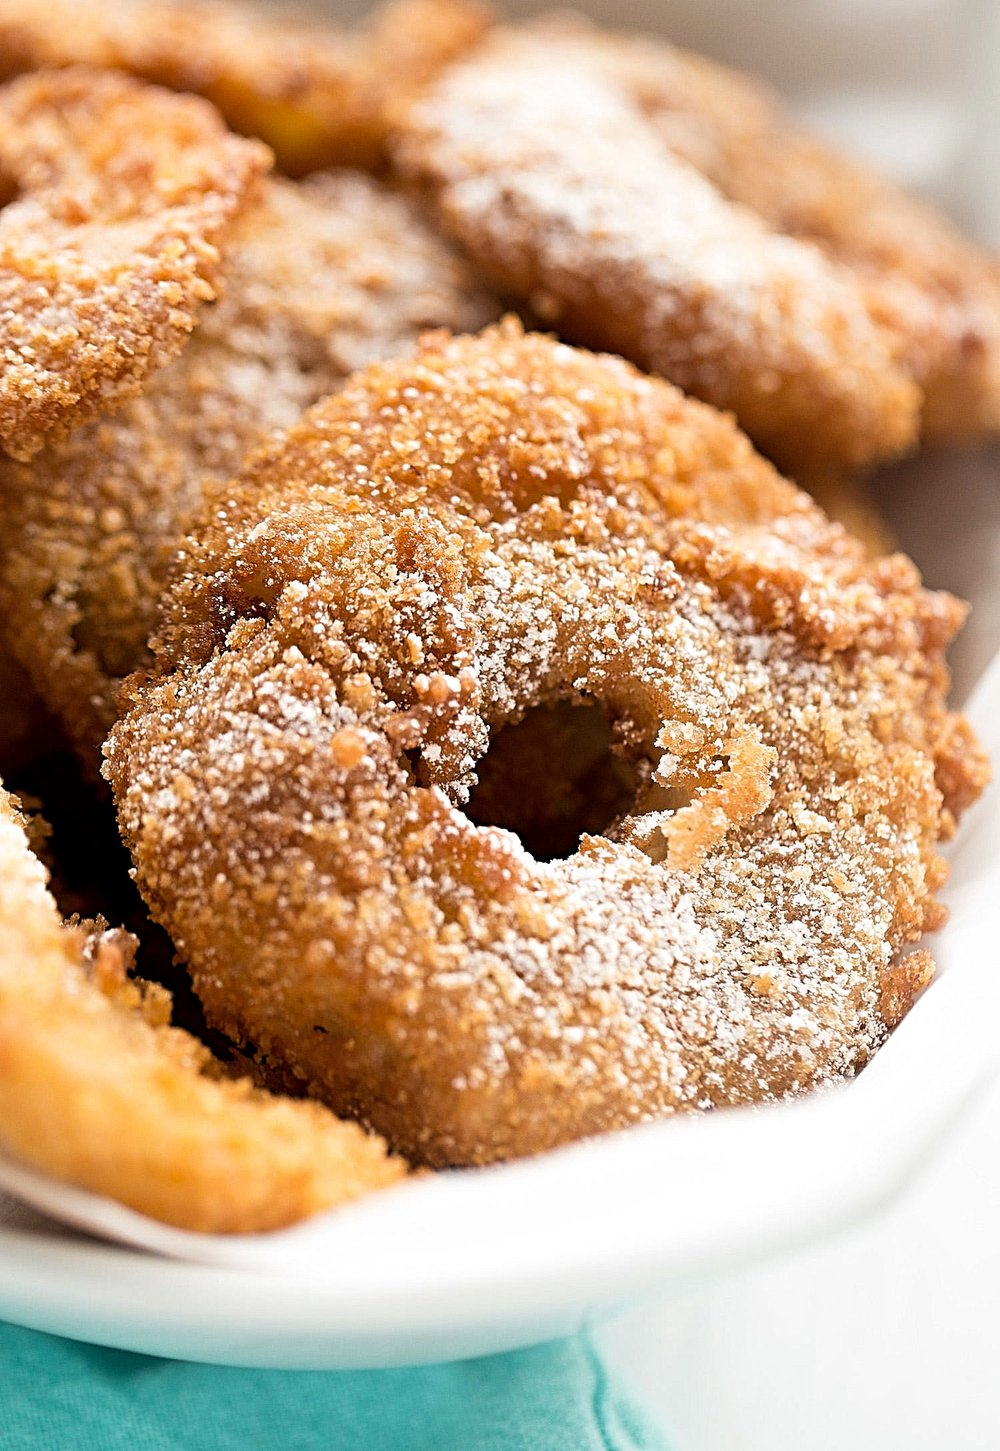 Deep-Fried Crispy Apple Donuts | Truffles and Trends